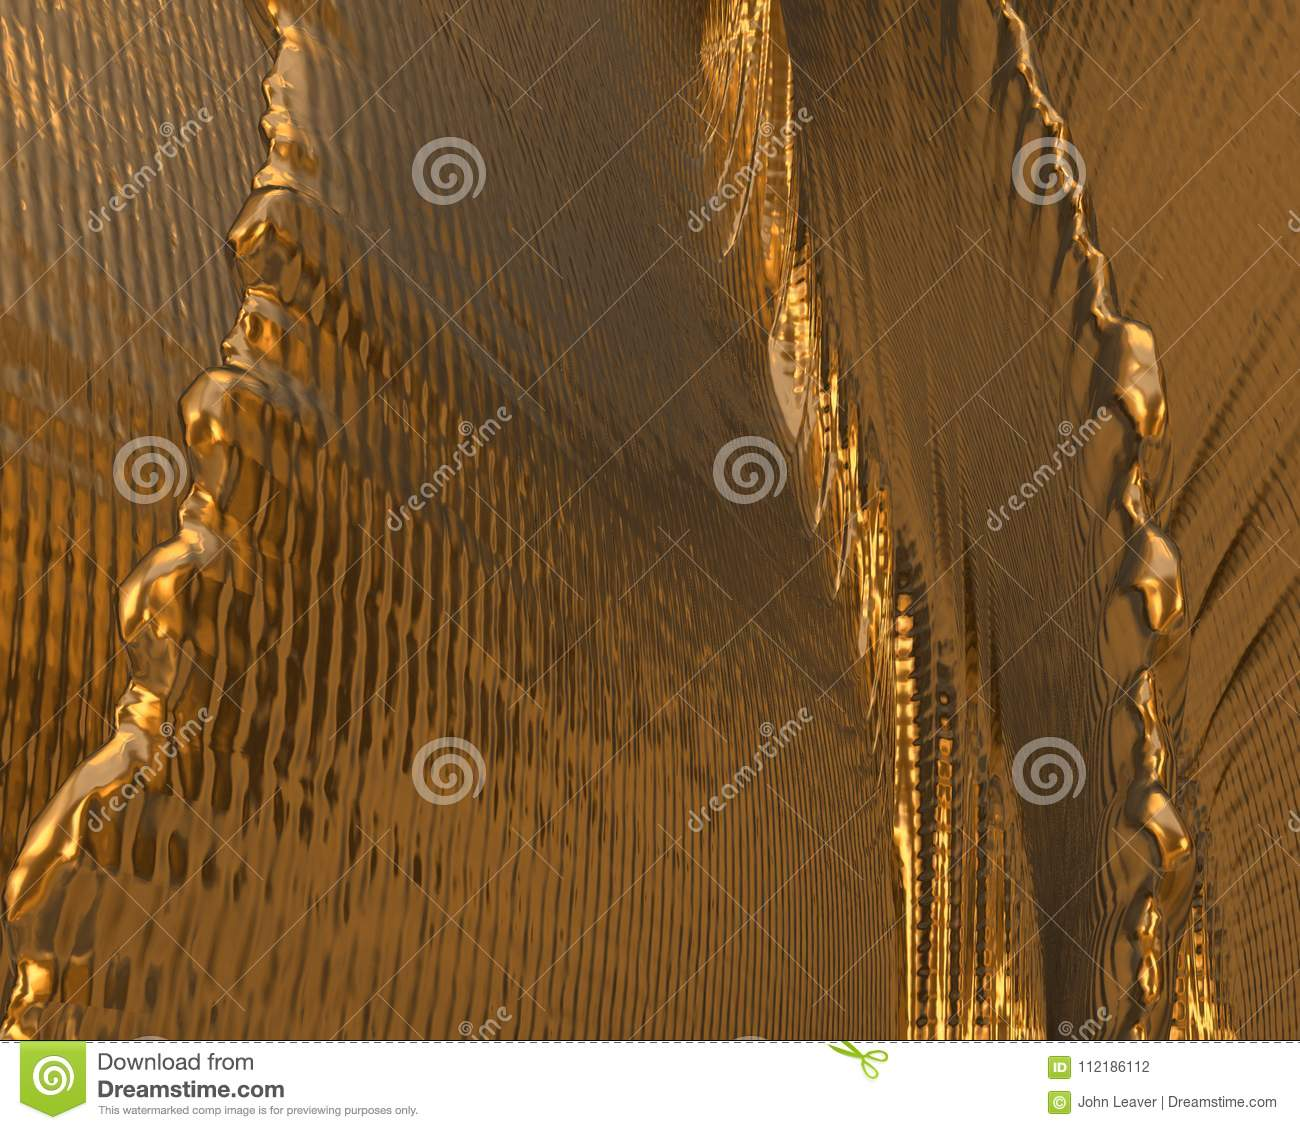 Gold texture / background